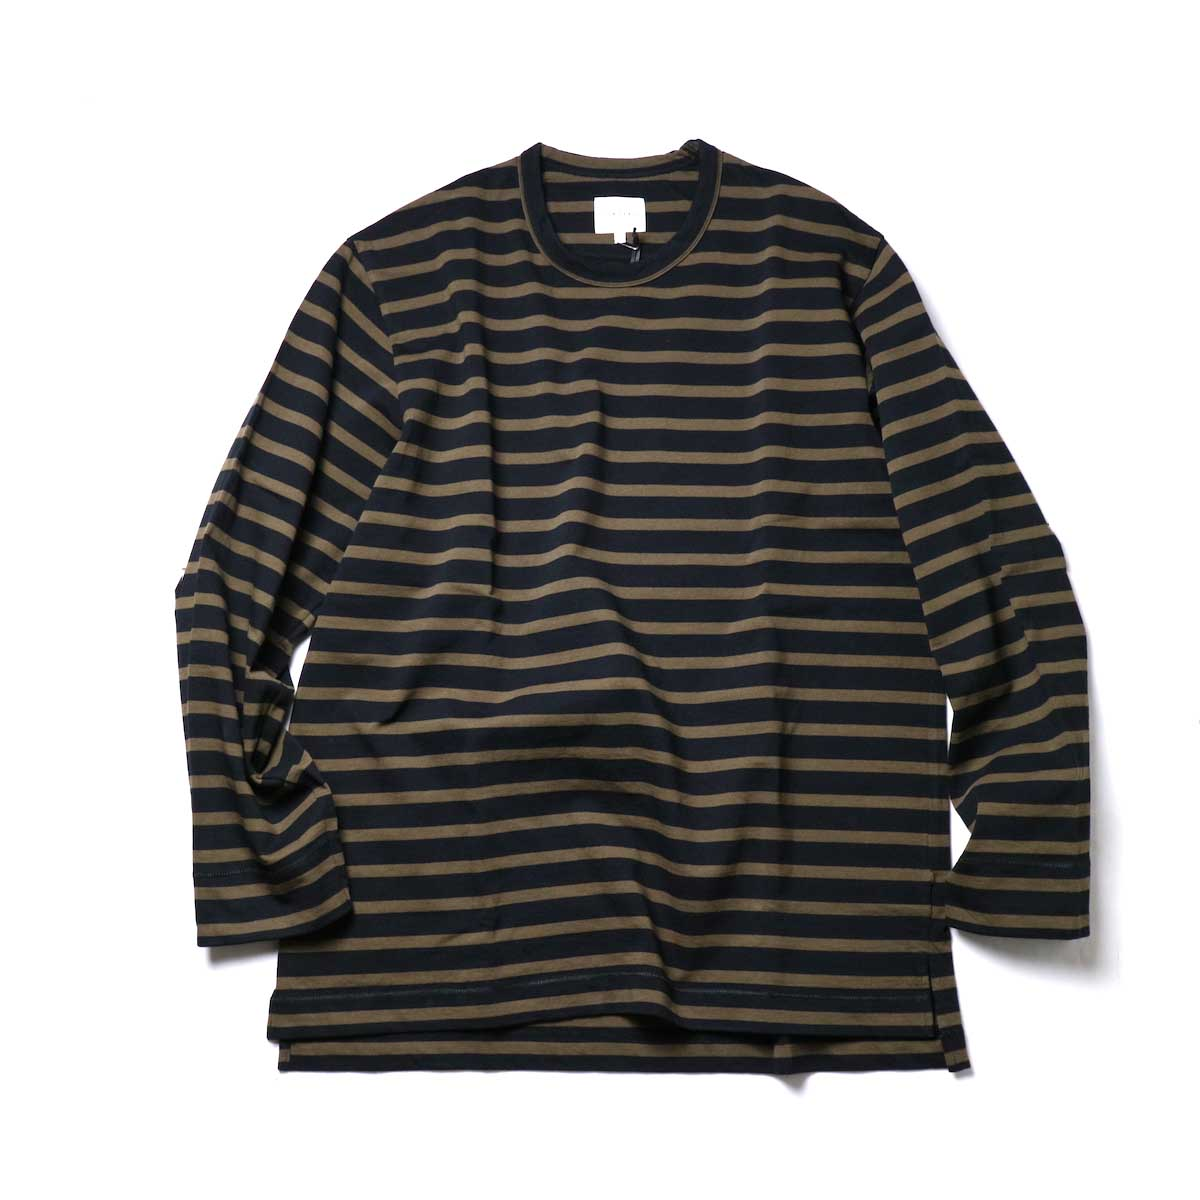 CURLY / SALFORD L/S BORDER TEE (Black / Olive)正面